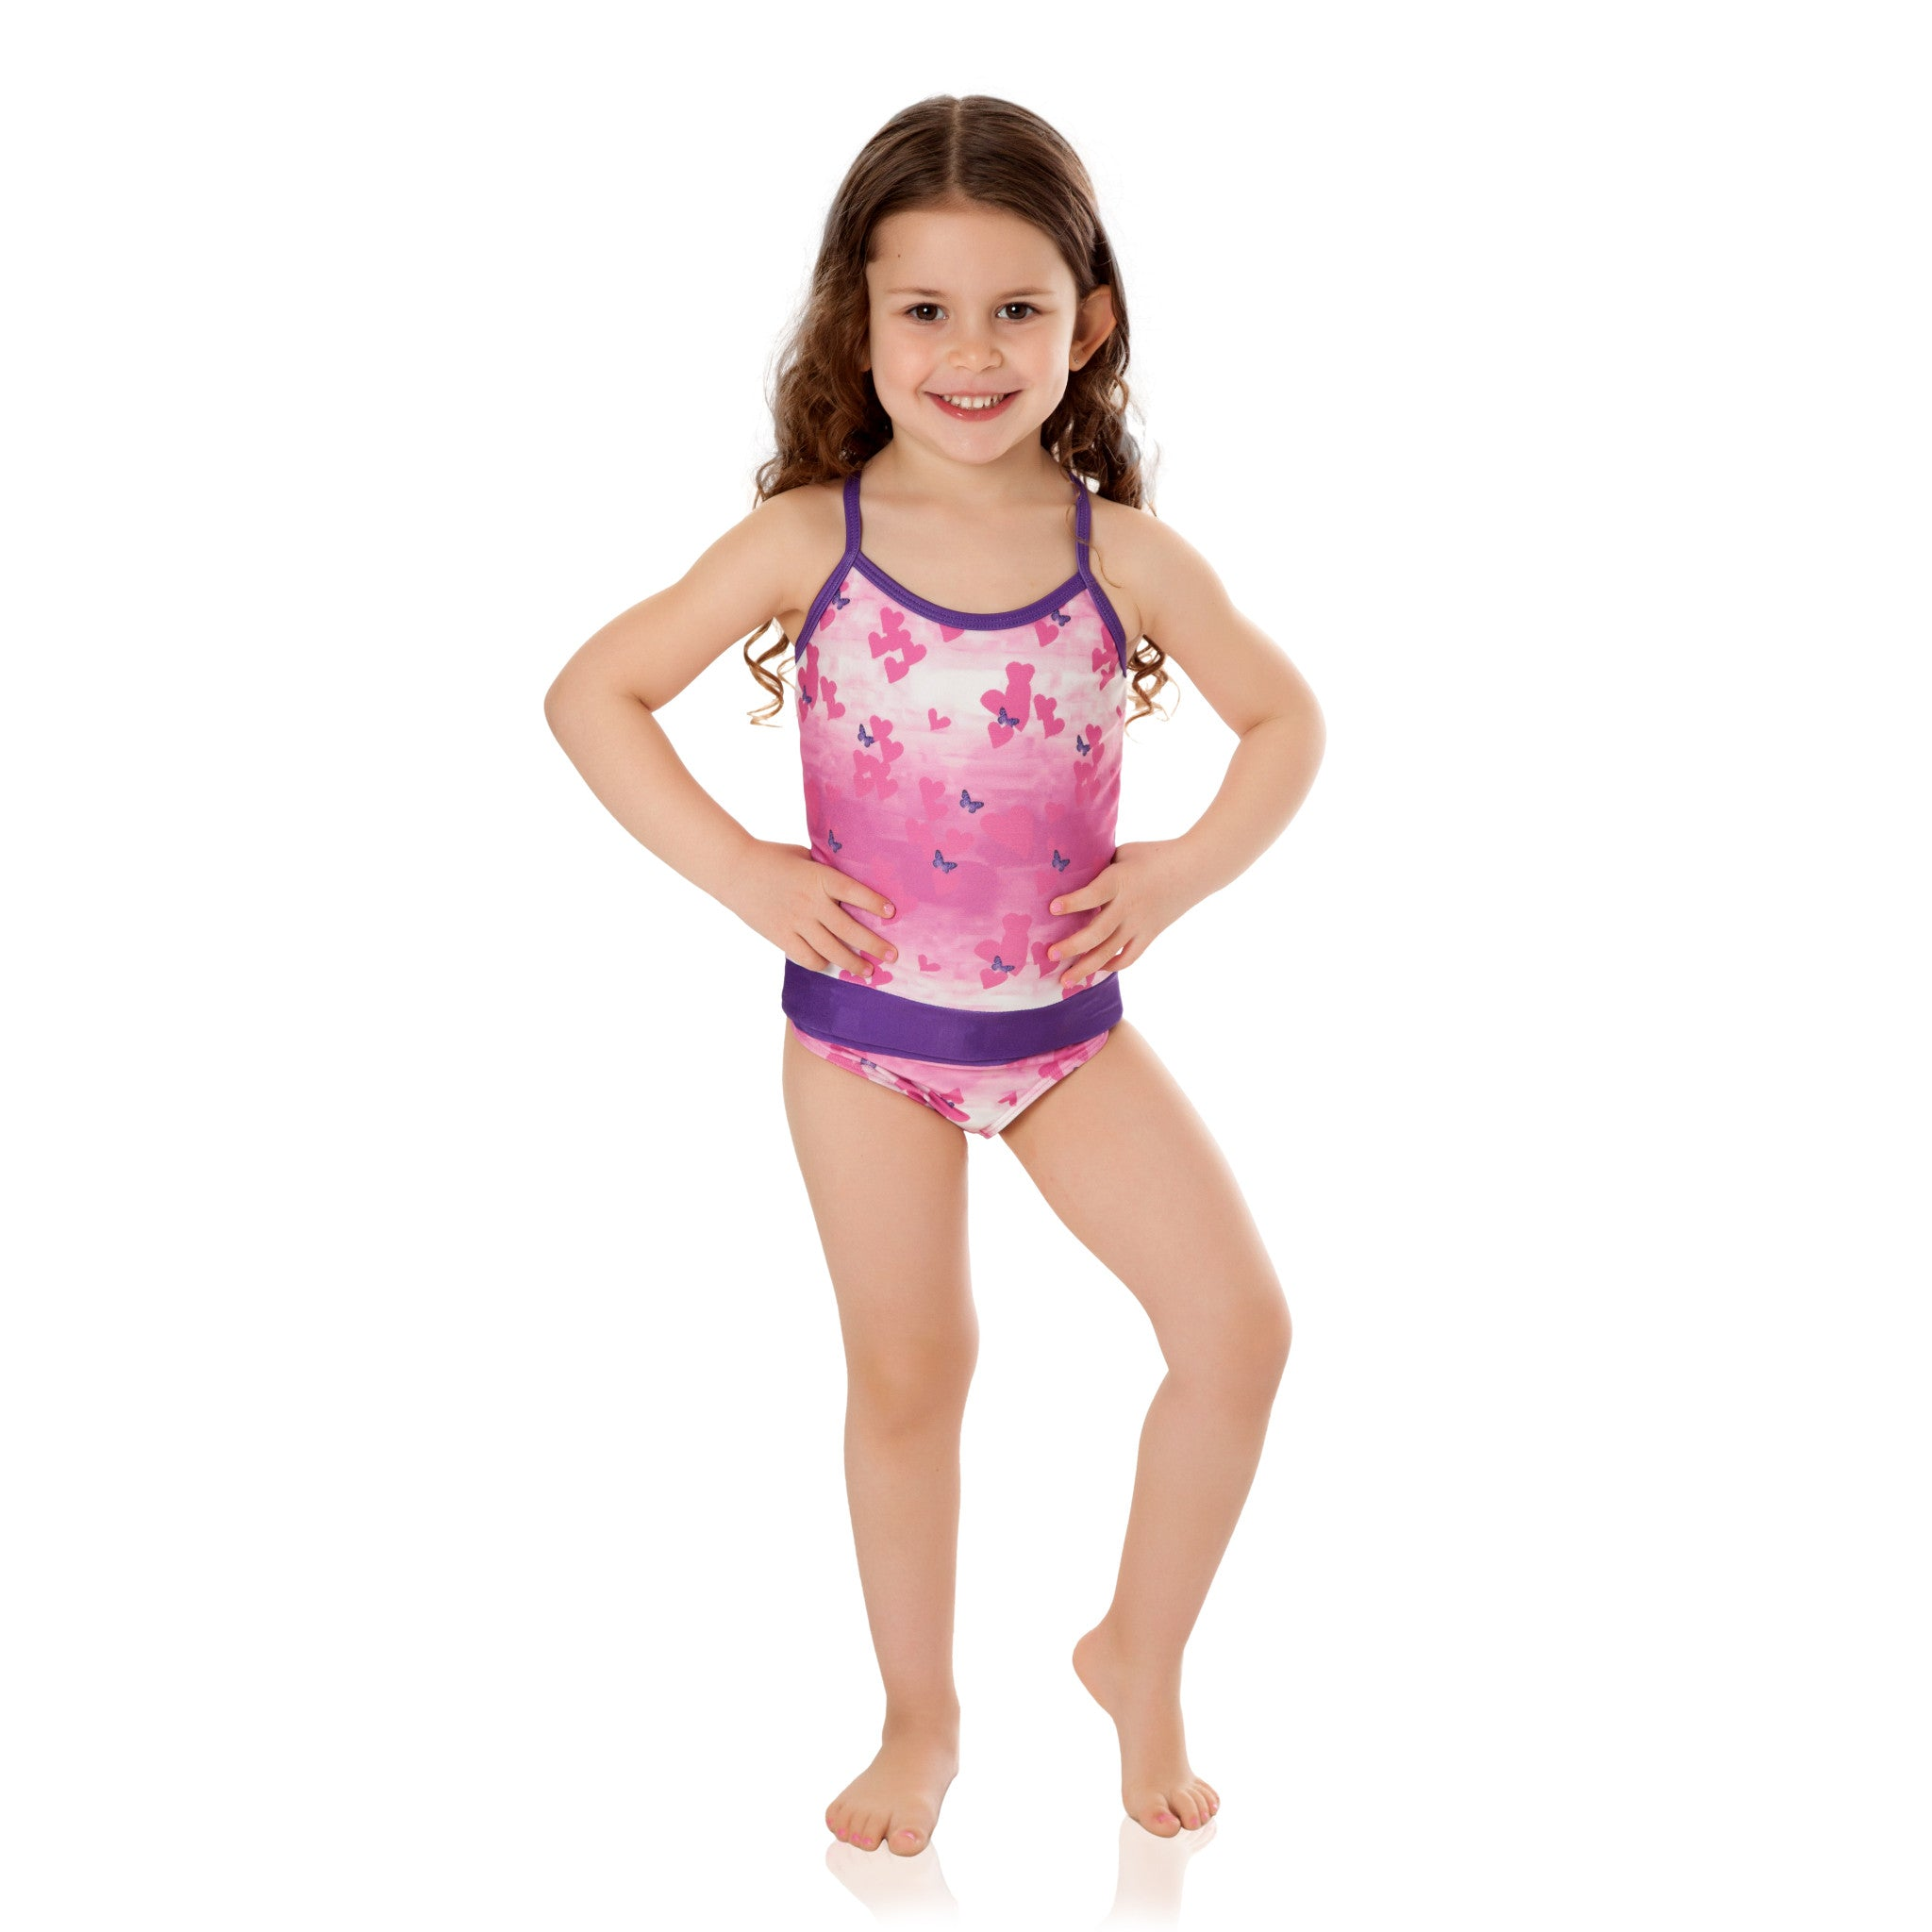 89cdce5c0d FASTEN Kid s swimwear with Magnetic Snaps